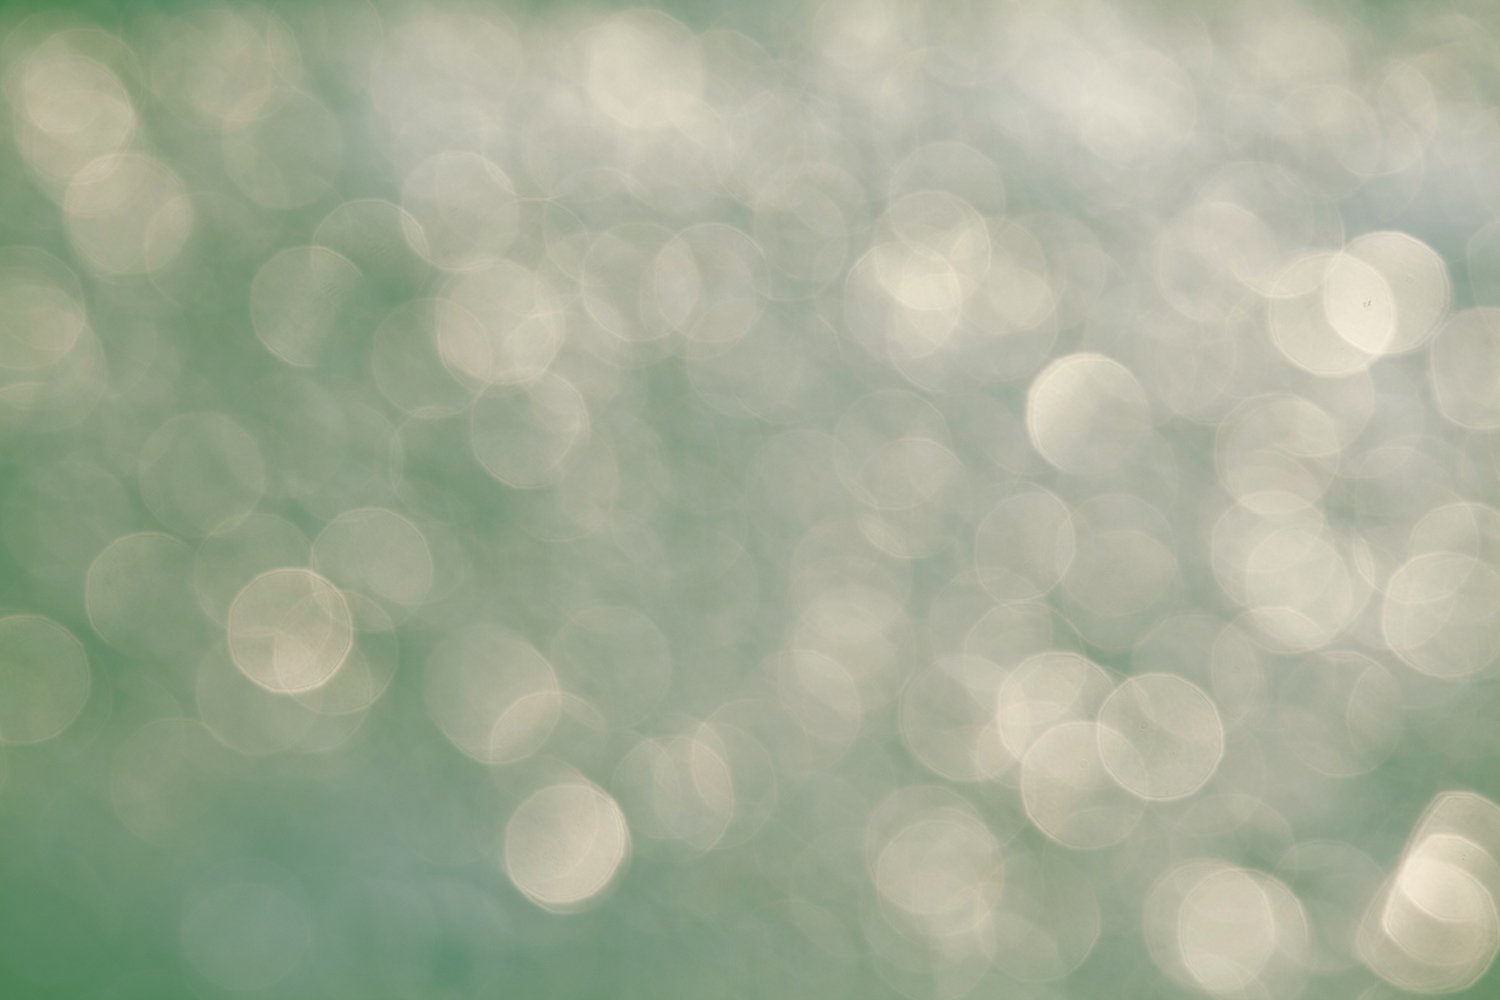 Festive abstract background, colorful bokeh and circles example image 4